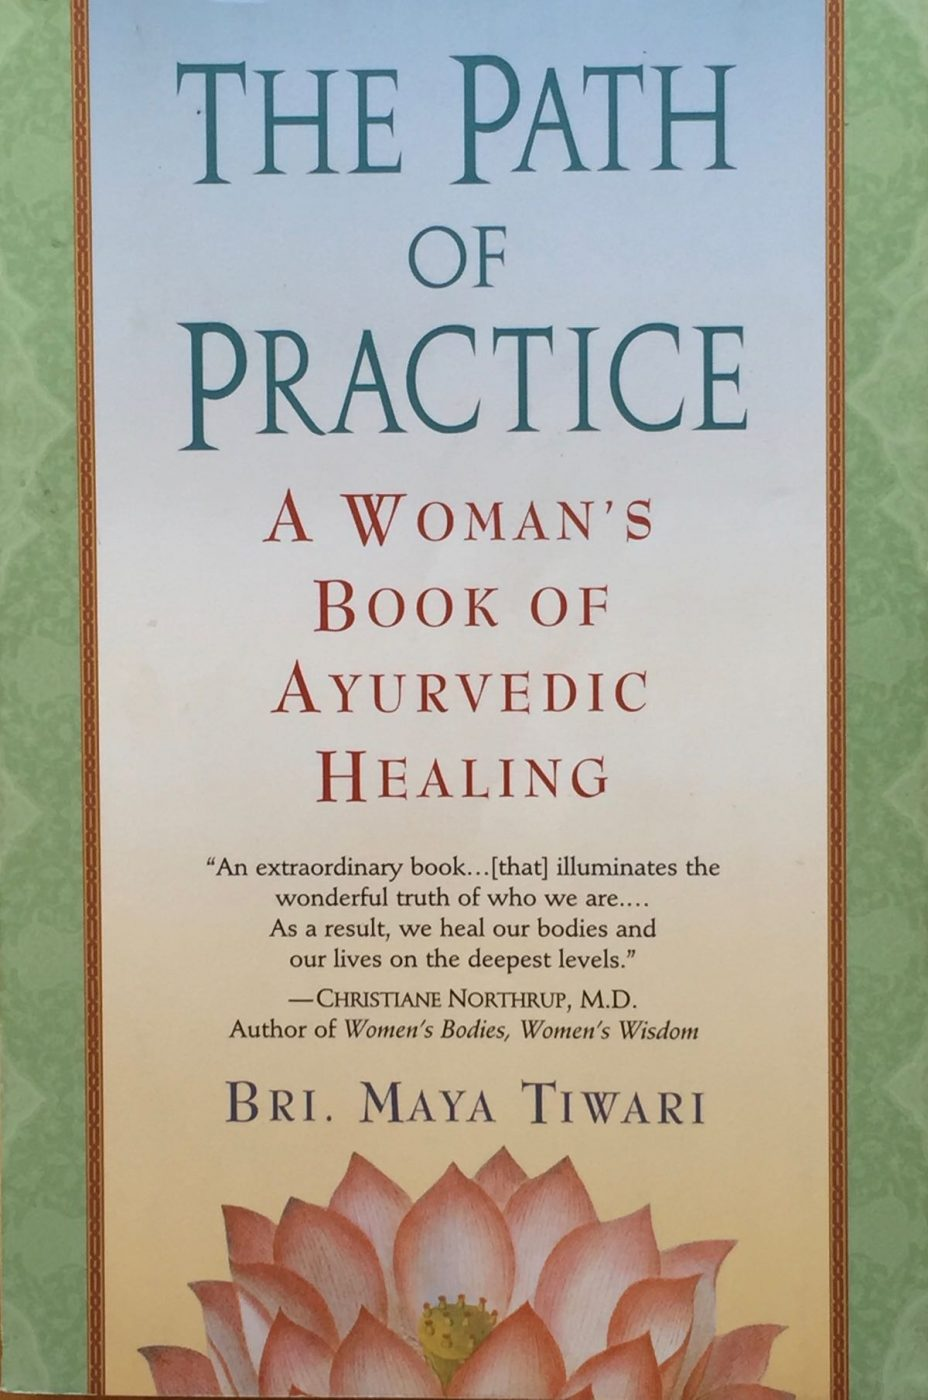 The Path Of Practice By Bri. Maya Tiwari